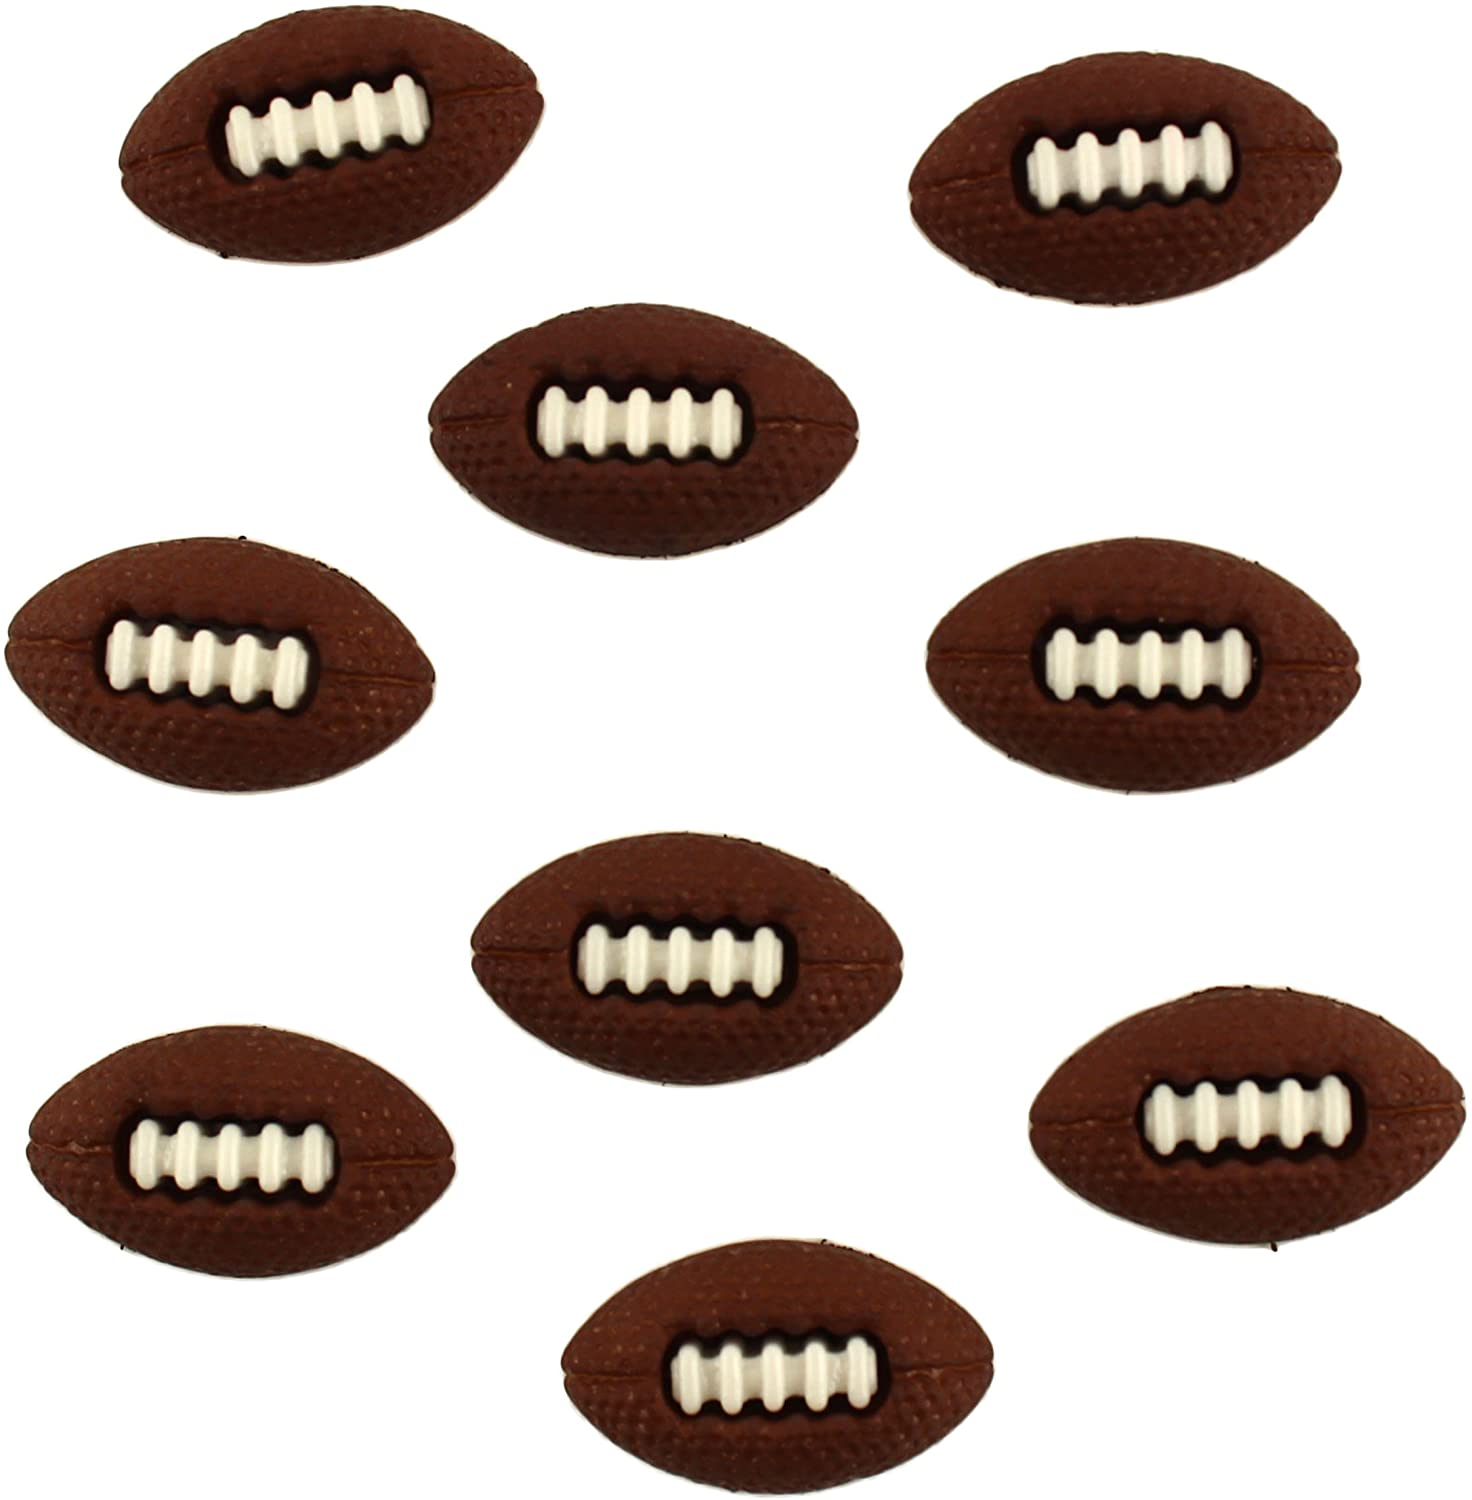 Buttons Galore Craft & Sewing Buttons - Footballs - 3 Packs (27 Buttons)